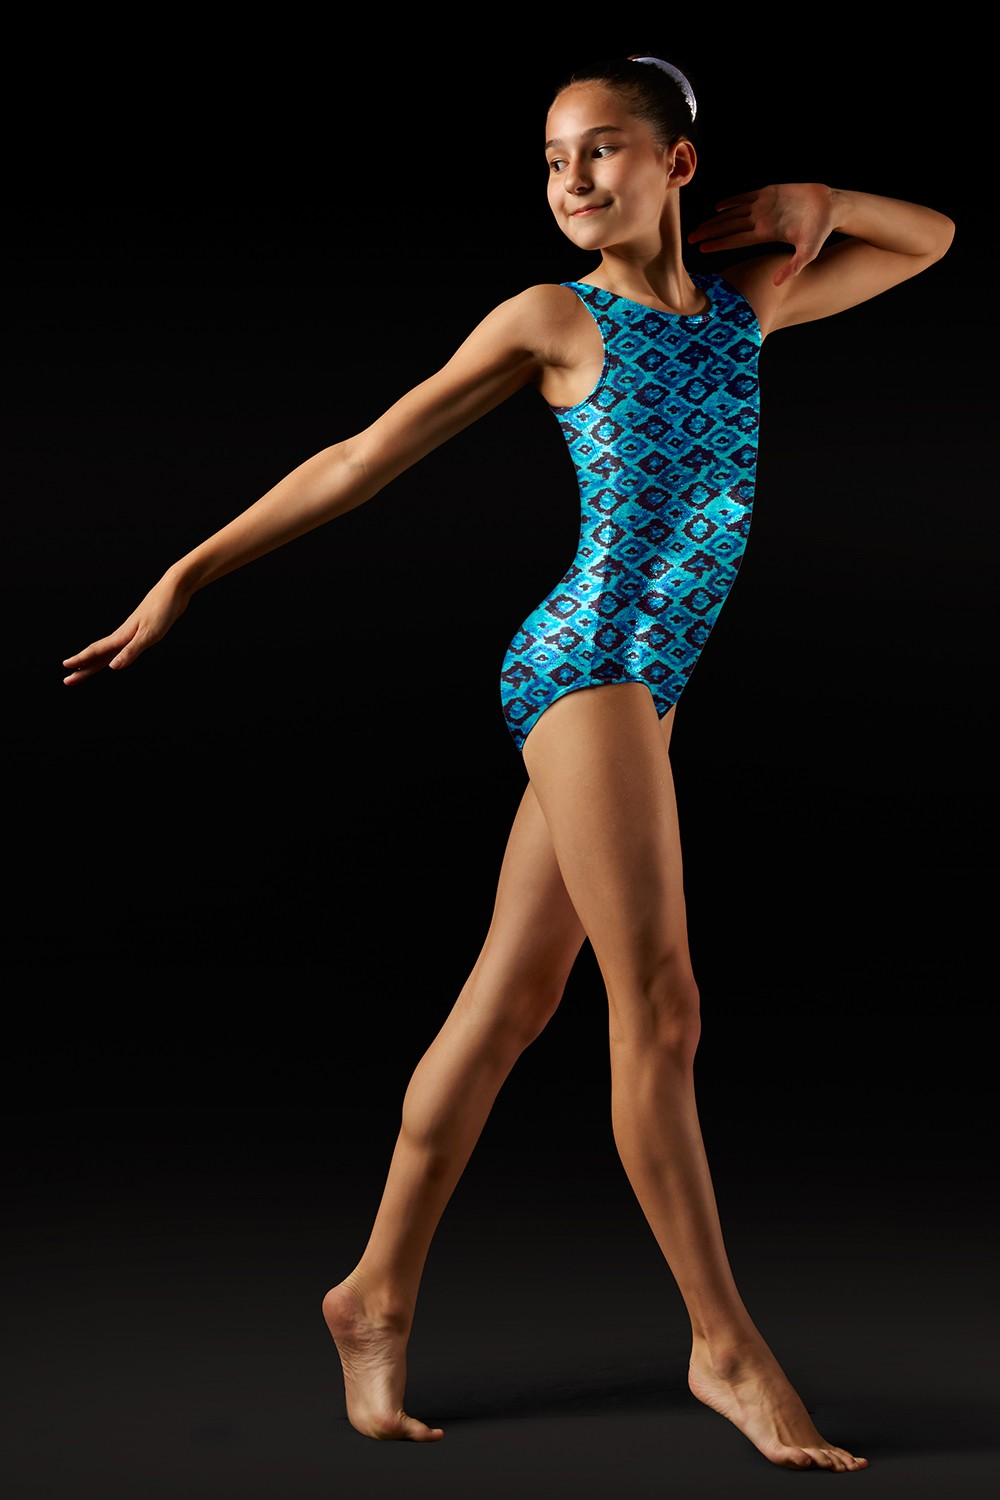 Aztec Tank Leotard Women's Gymnastics Leotards